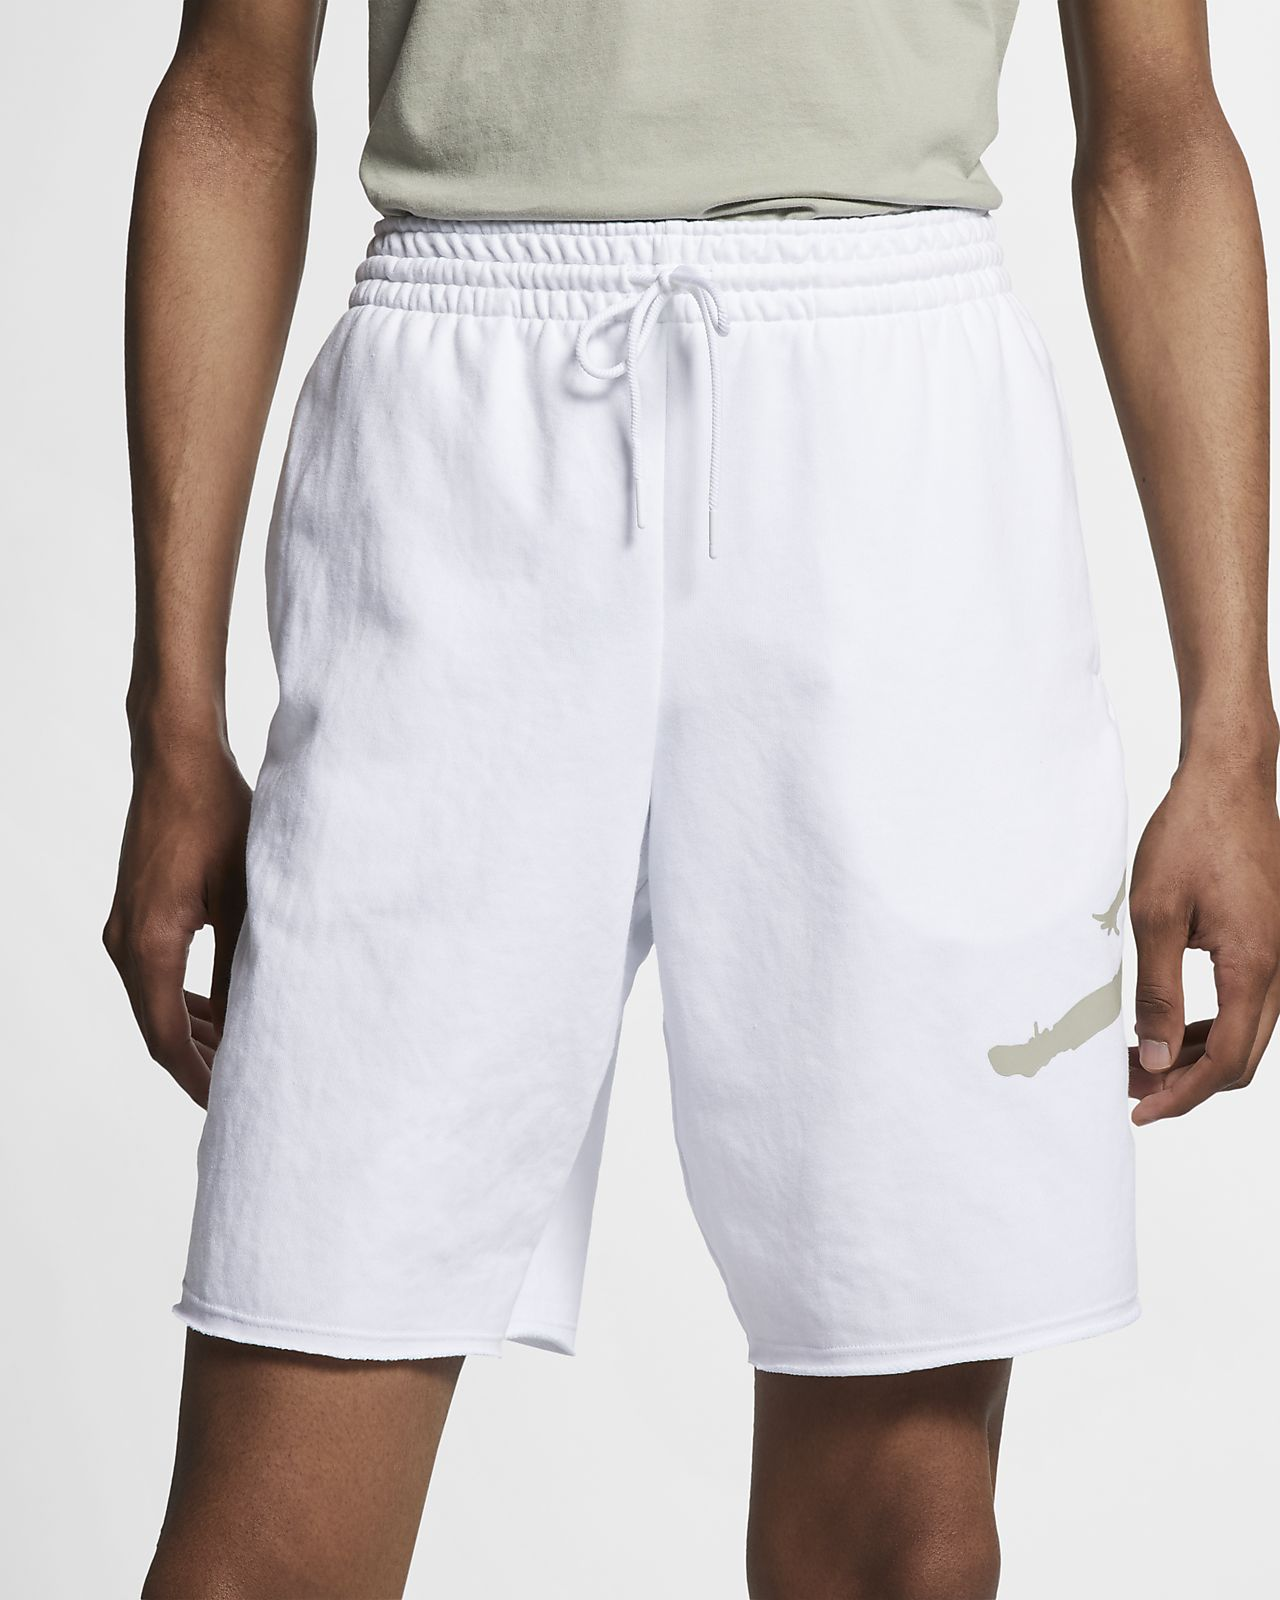 0b45905392c Jordan Jumpman Logo Men's Fleece Shorts. Nike.com